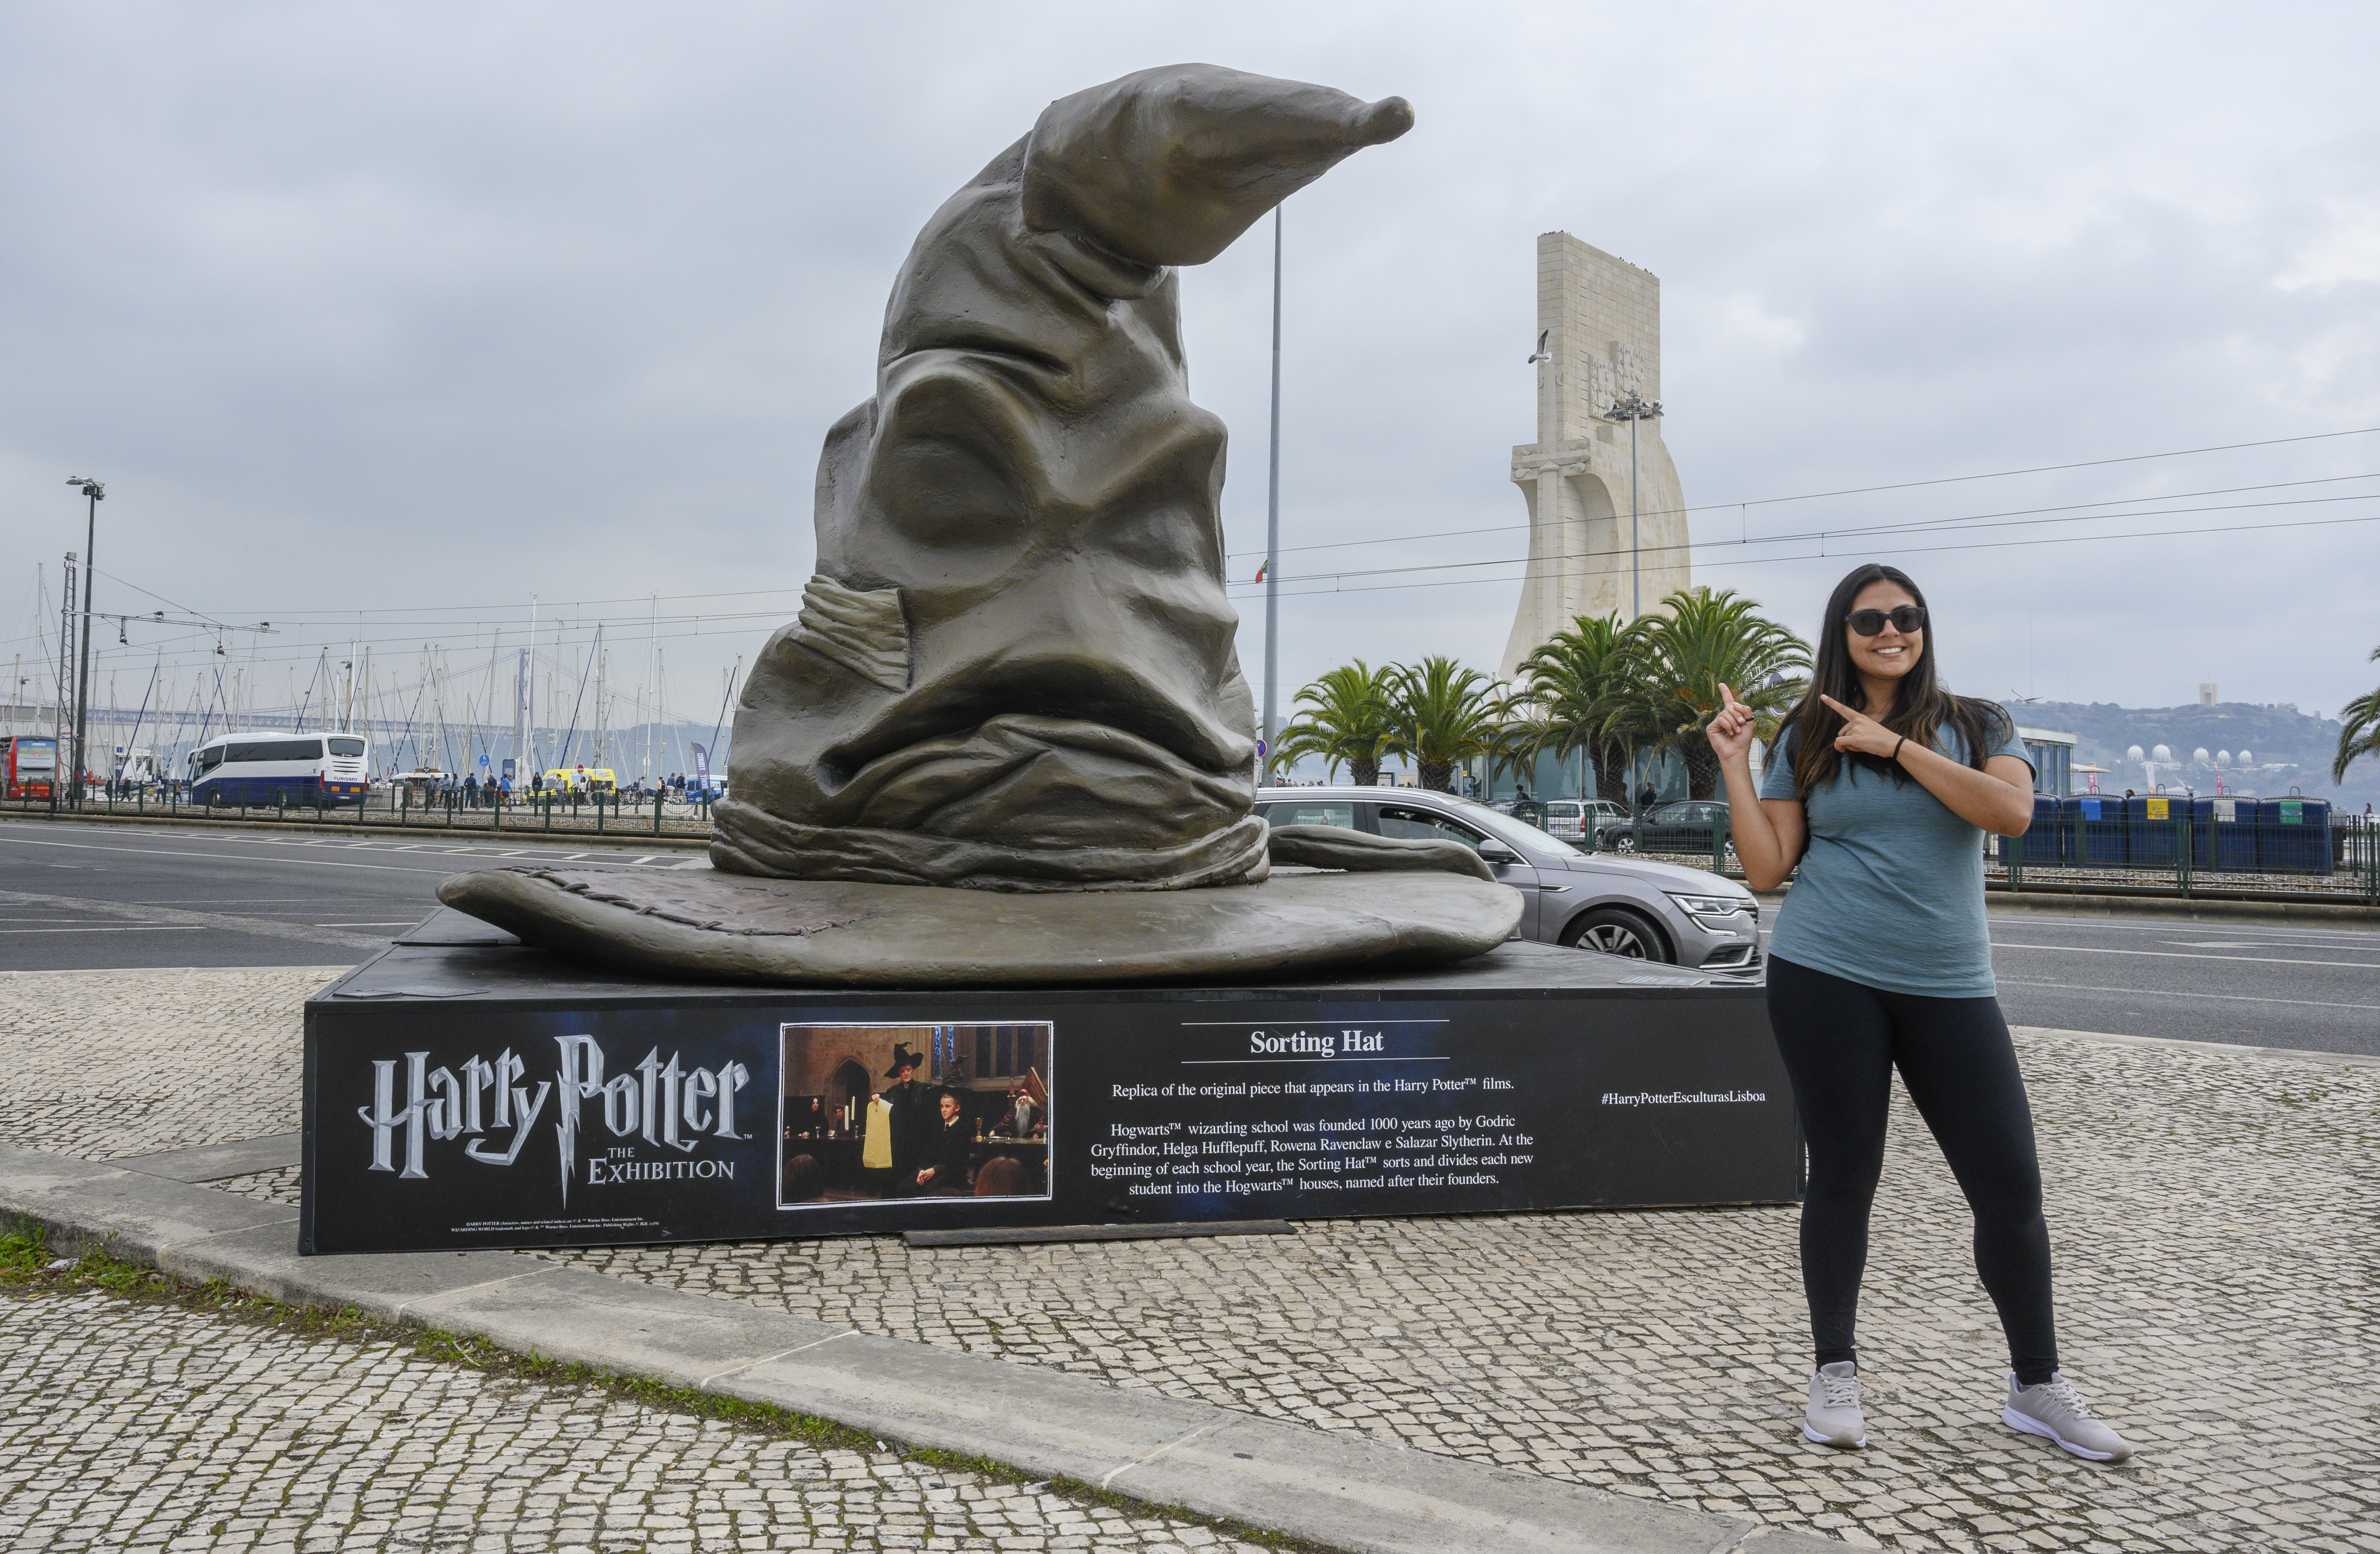 Harry Potter The Exhibition in Lisbon